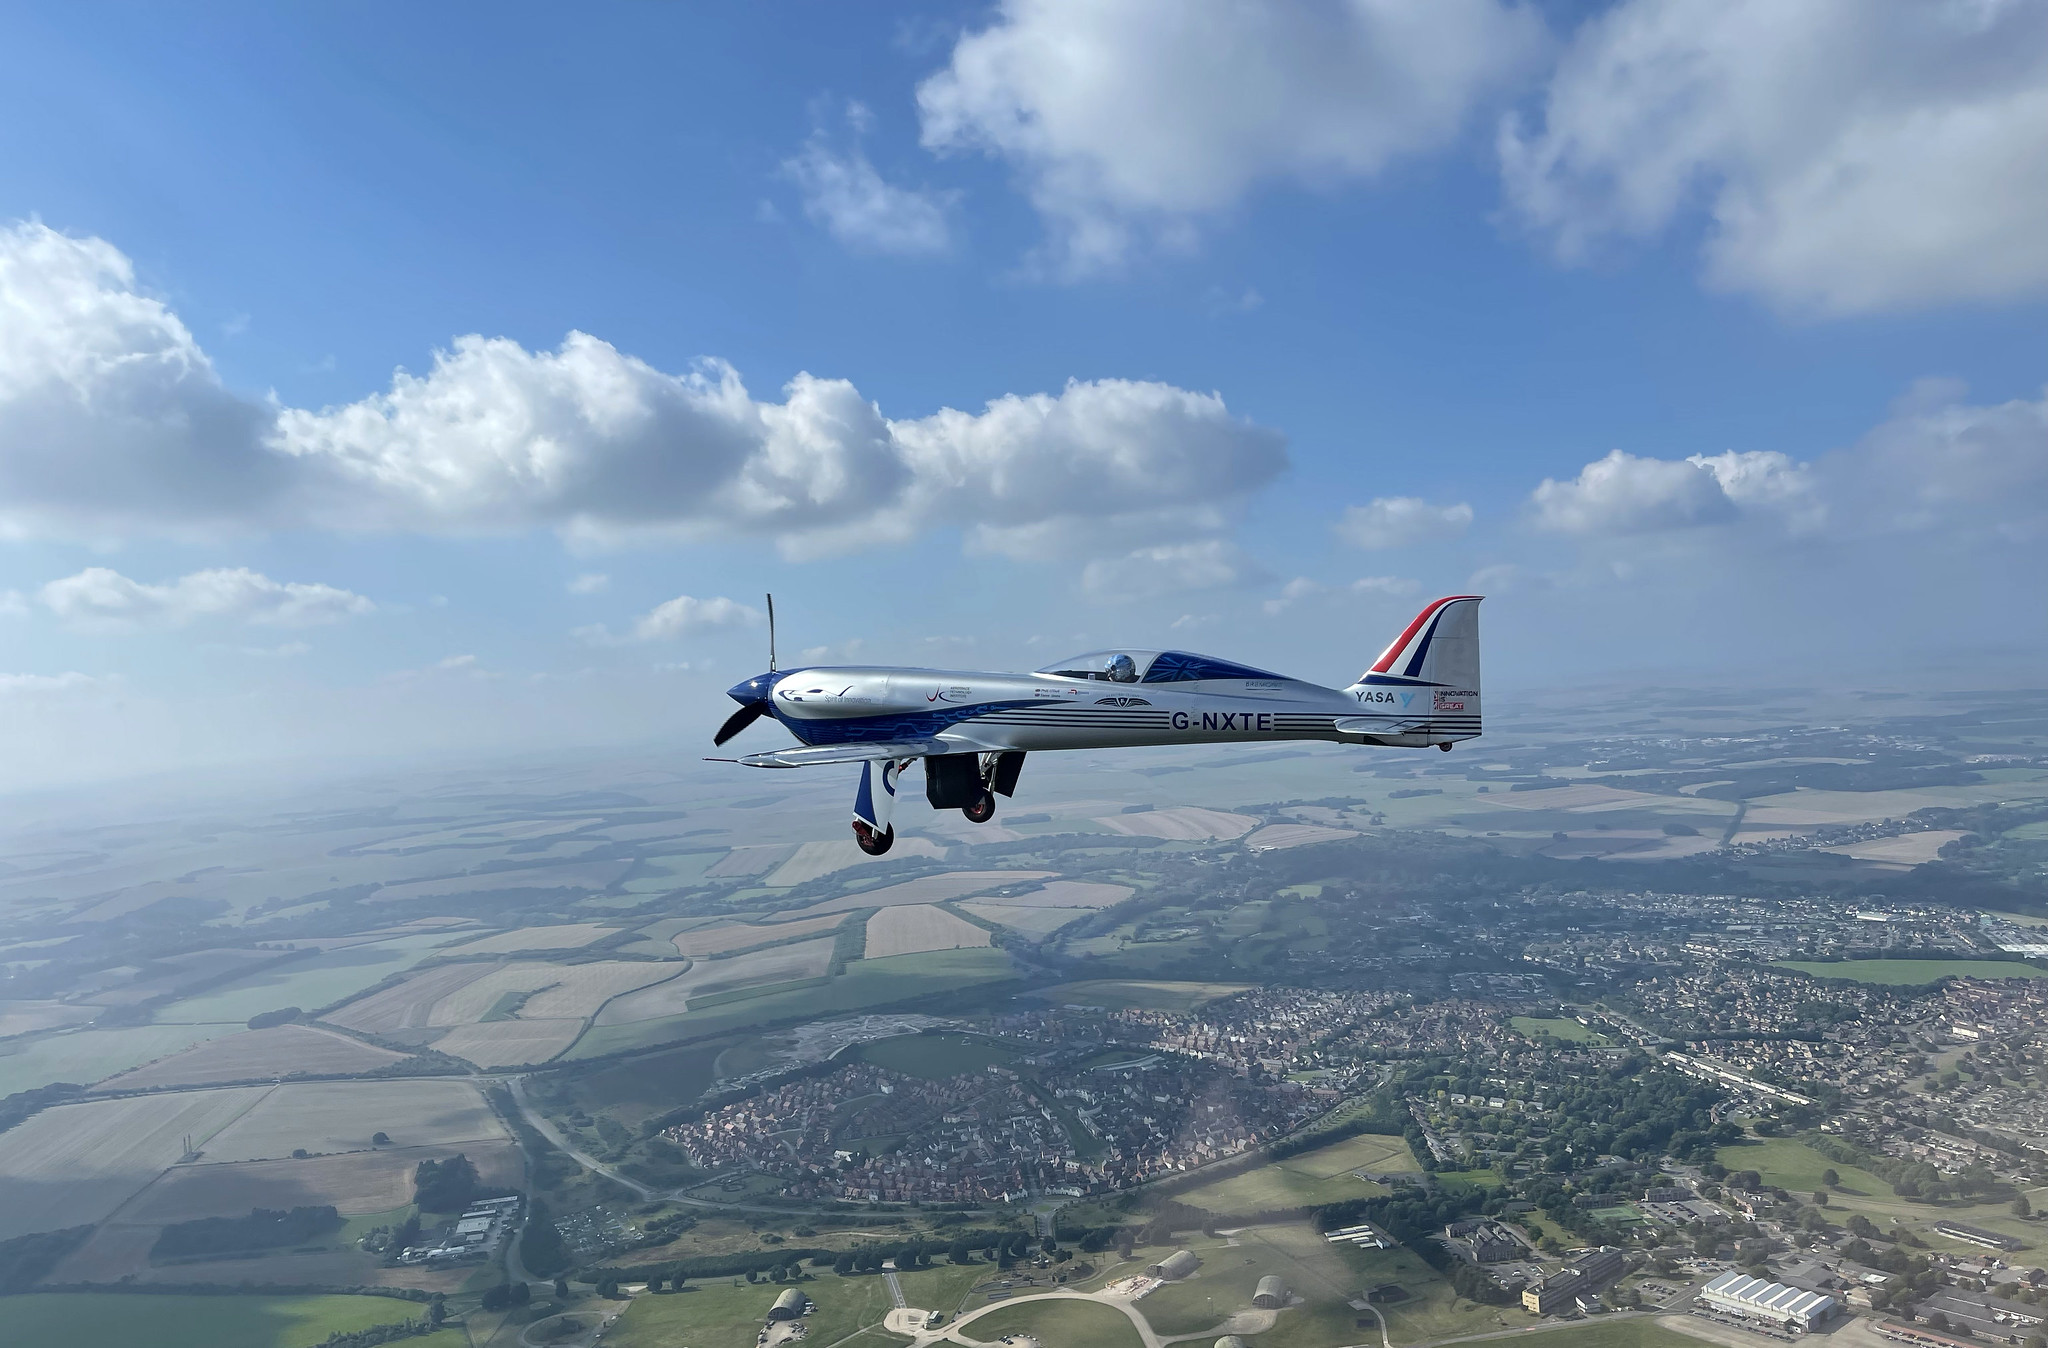 Rolls Royce's All Electric Plane Completes Its First Flight